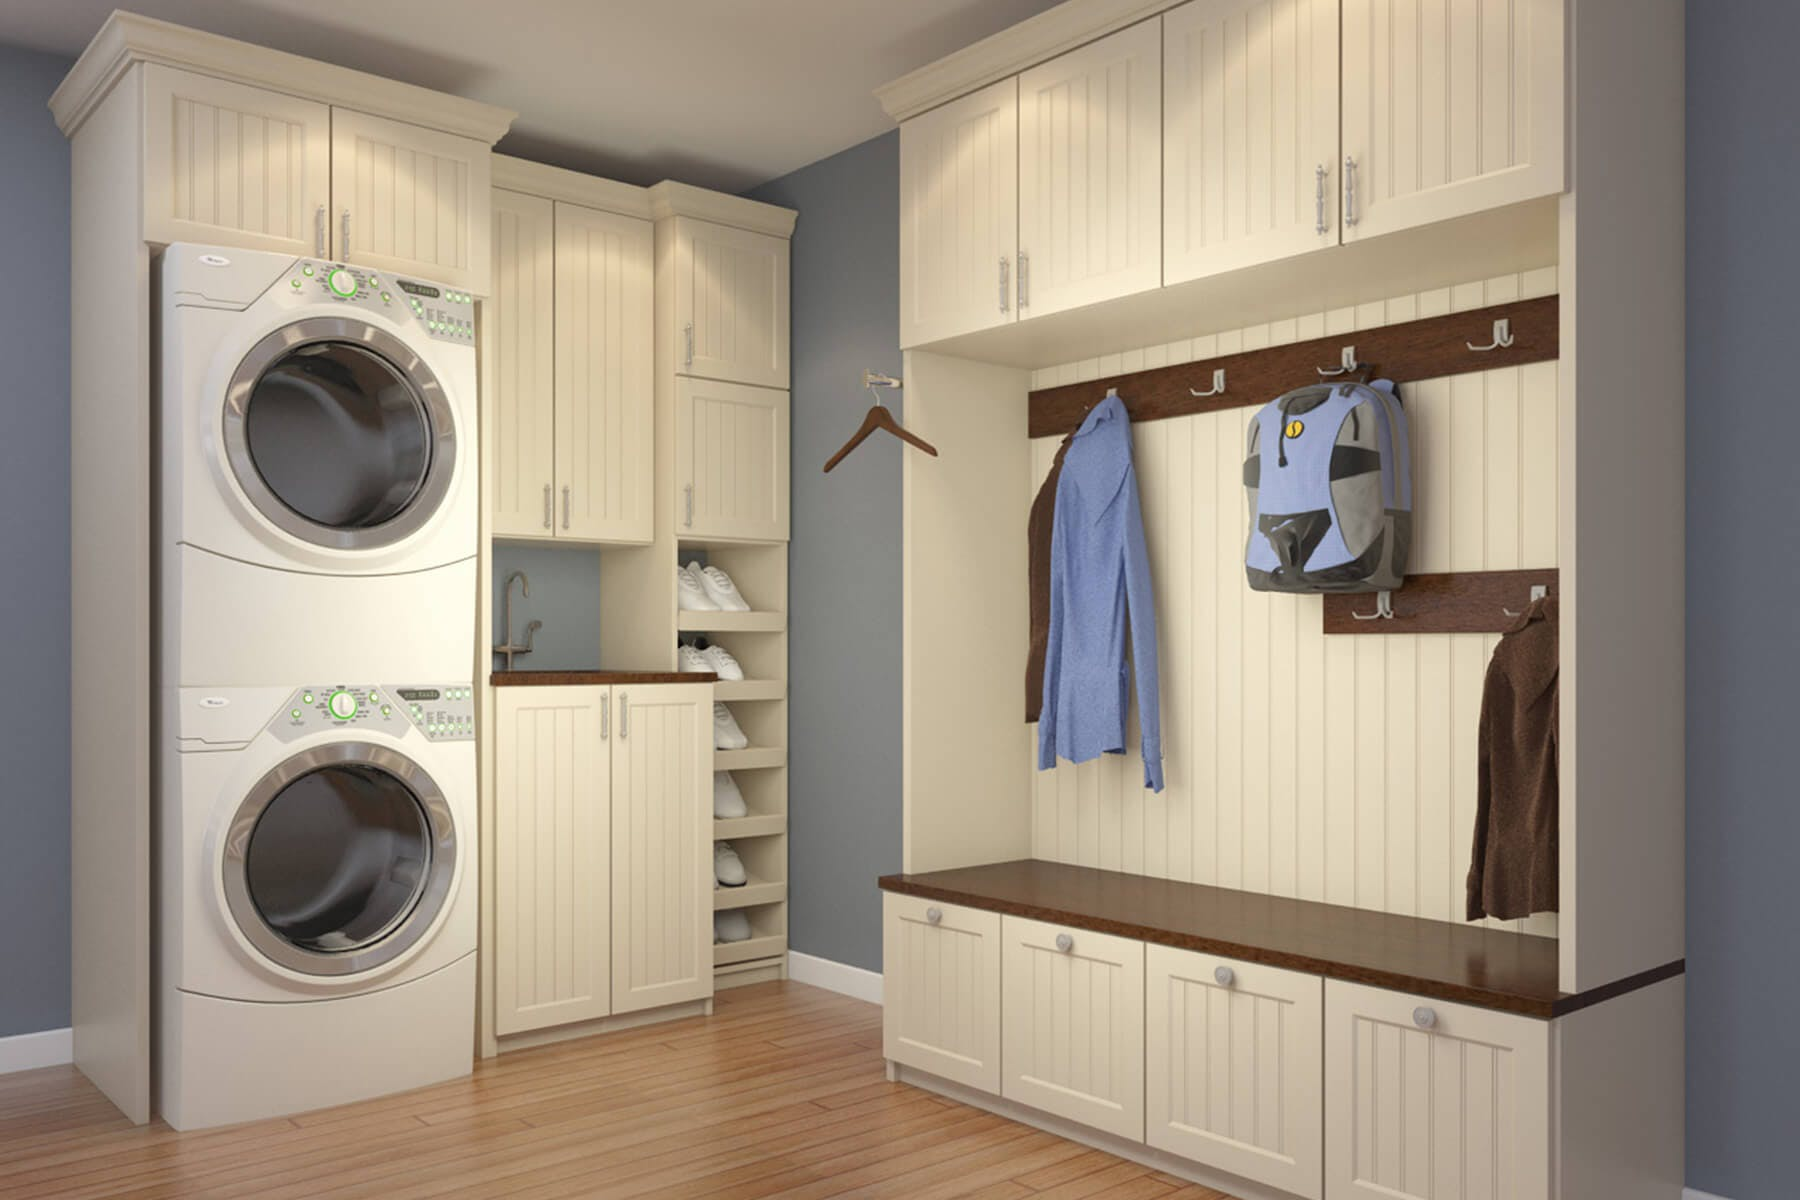 Laundry Room Cabinets | Makeover Design Ideas | Closet Factory on Laundry Cabinets Ideas  id=23812